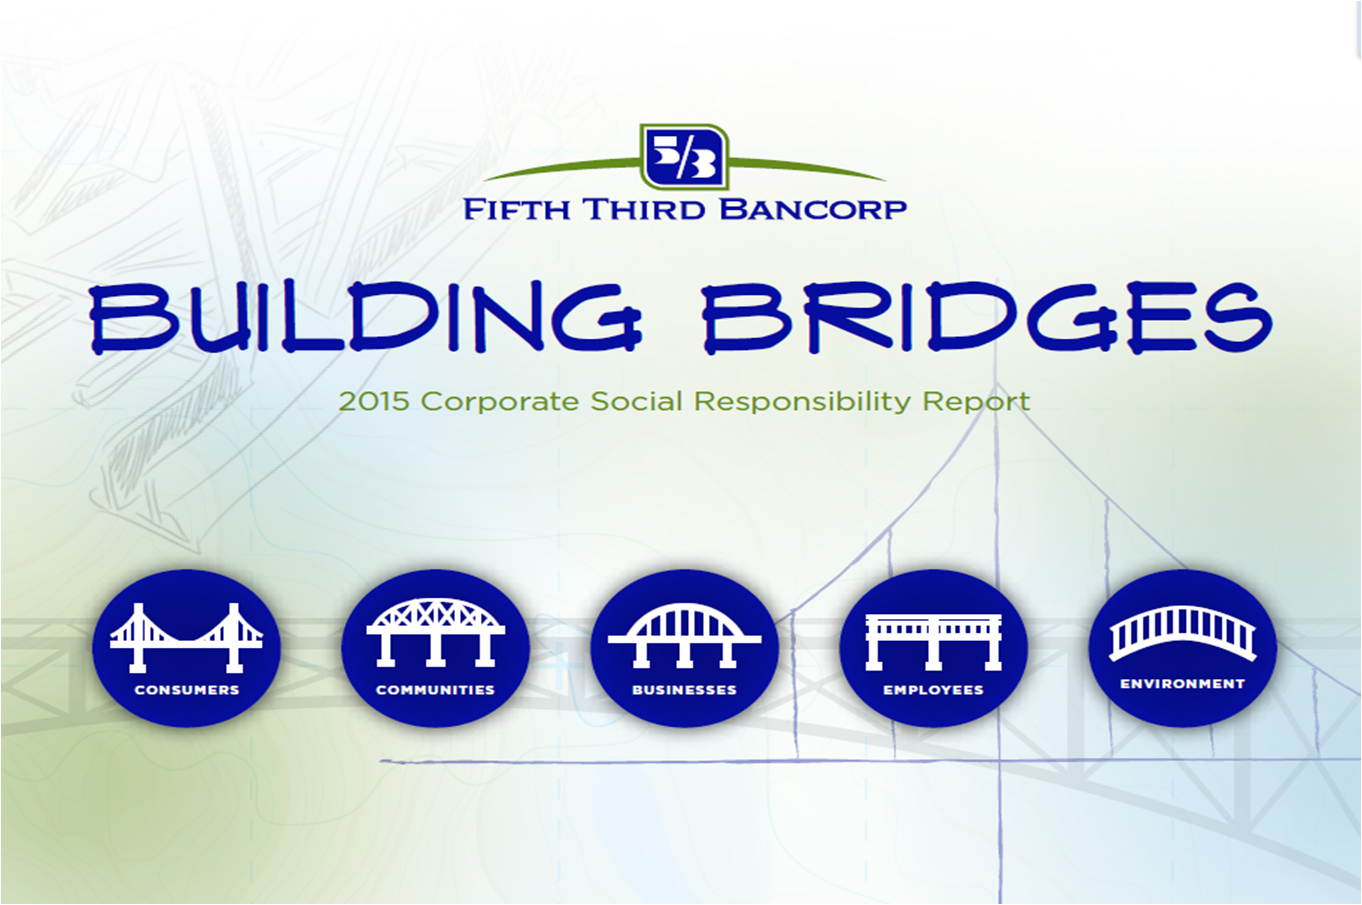 corporate social responsibility report Corporate social responsibility is imperative, as most consumers and job seekers consider how businesses deal with their environmental, social and economic impacts.